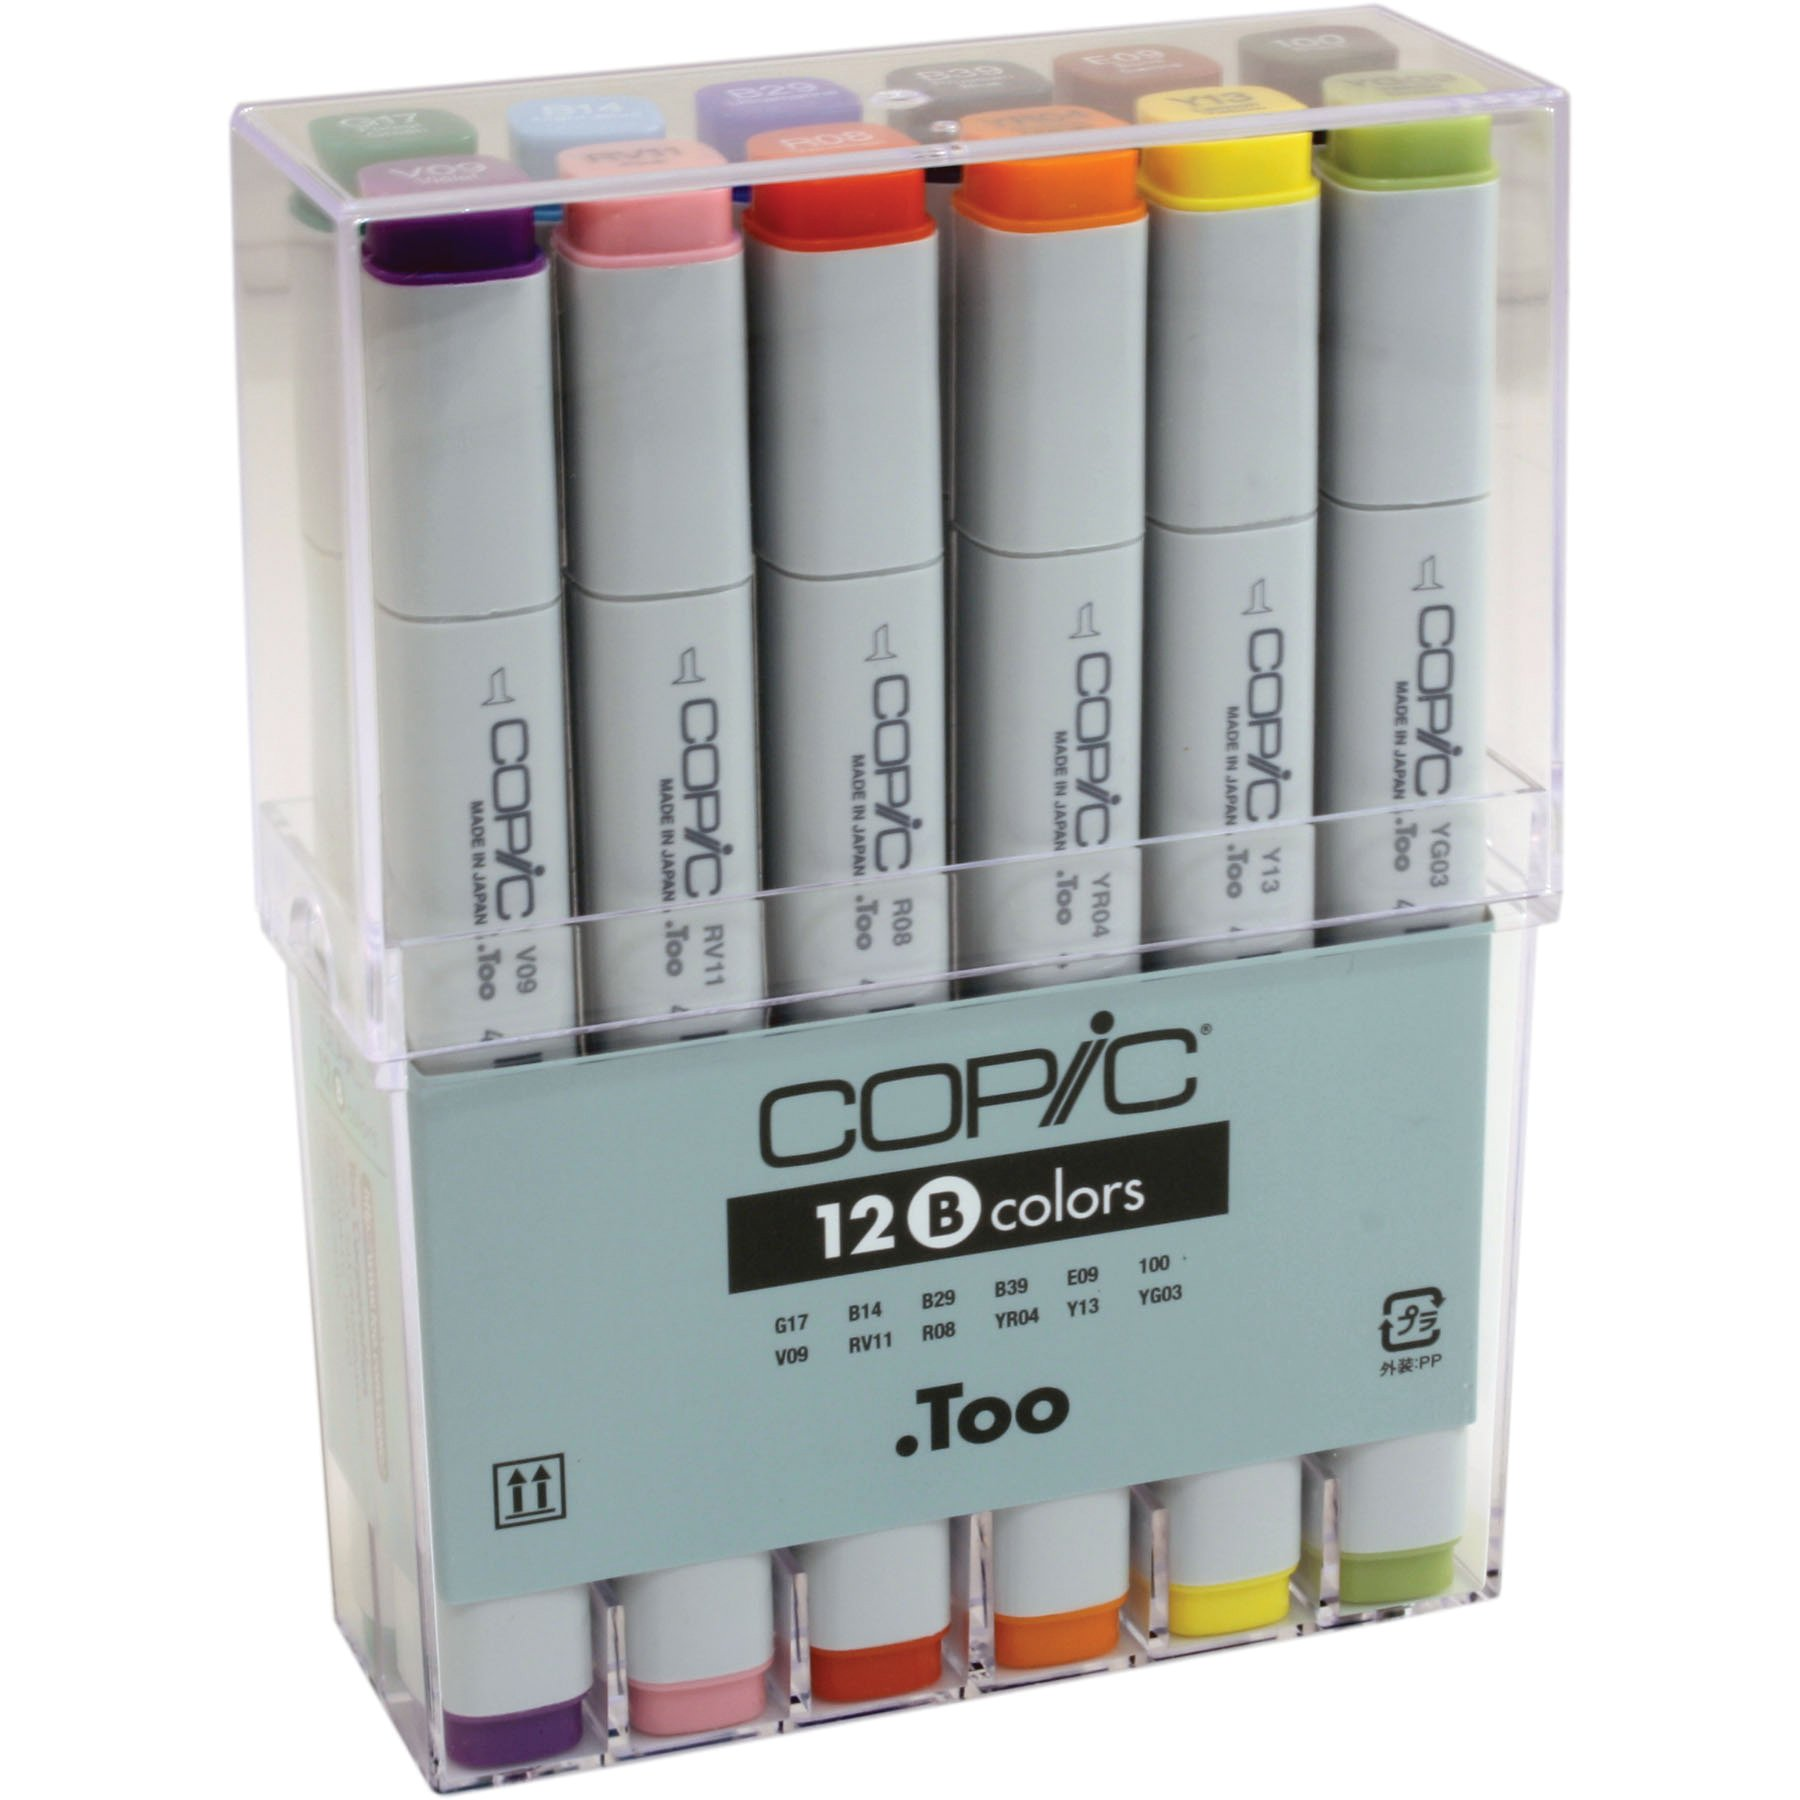 Copic Classic Original Marker Basic Set: Square Barrel, Broad and Fine Nibs, 12 Assorted Colors (CB12)